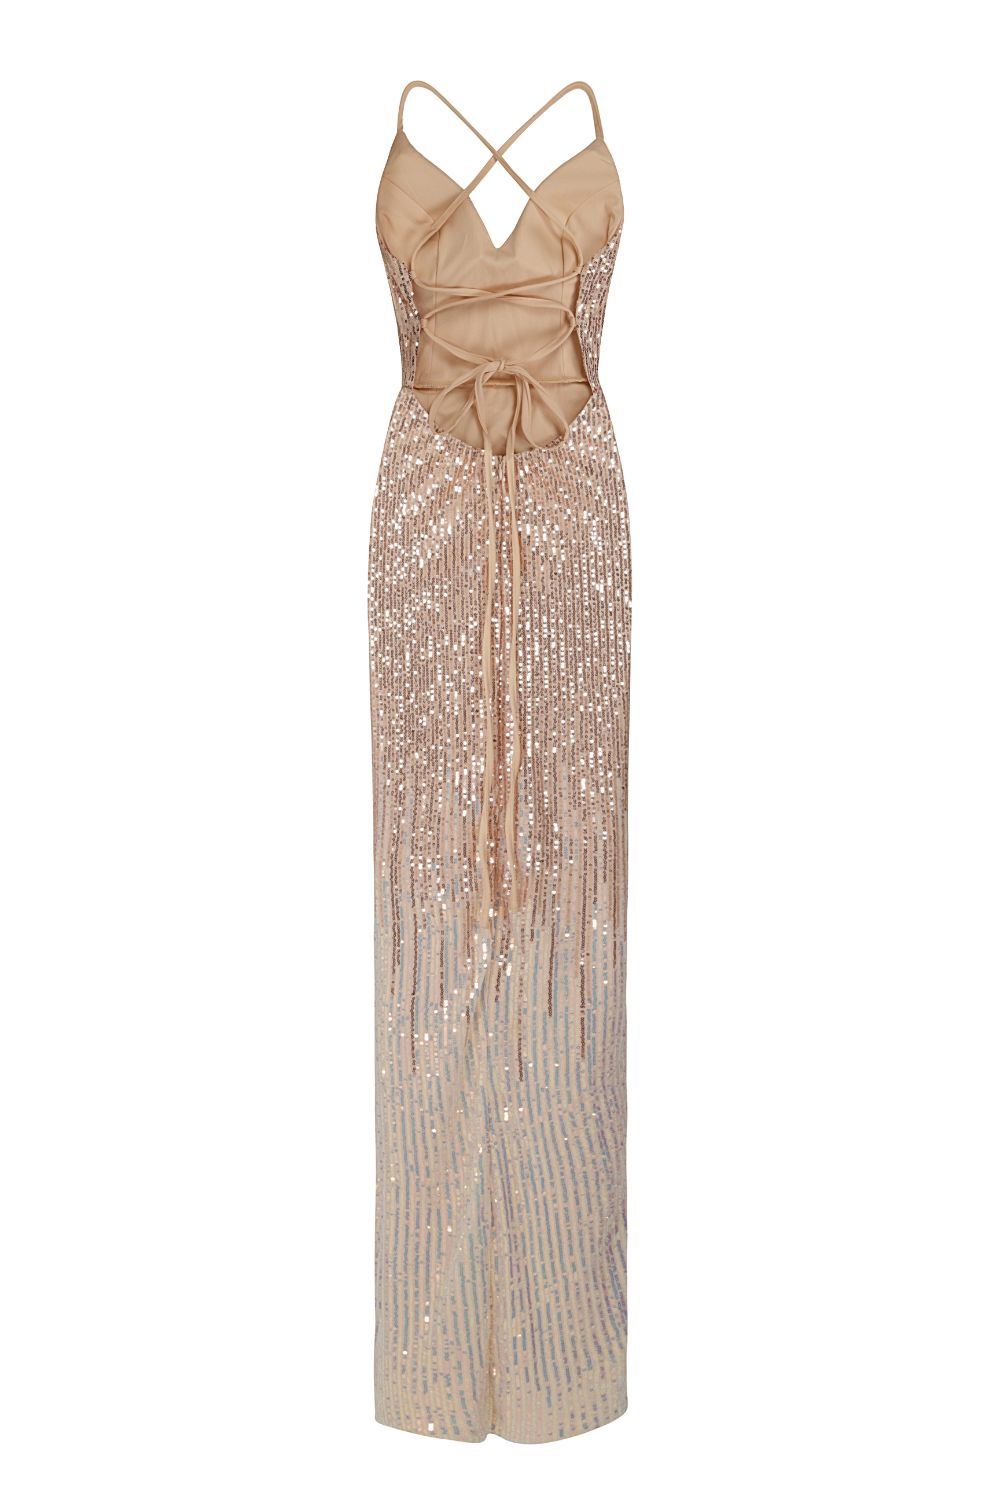 Tiara Rose Gold Silver Ombre Sequin Plunge Thigh Slit Fishtail Dress